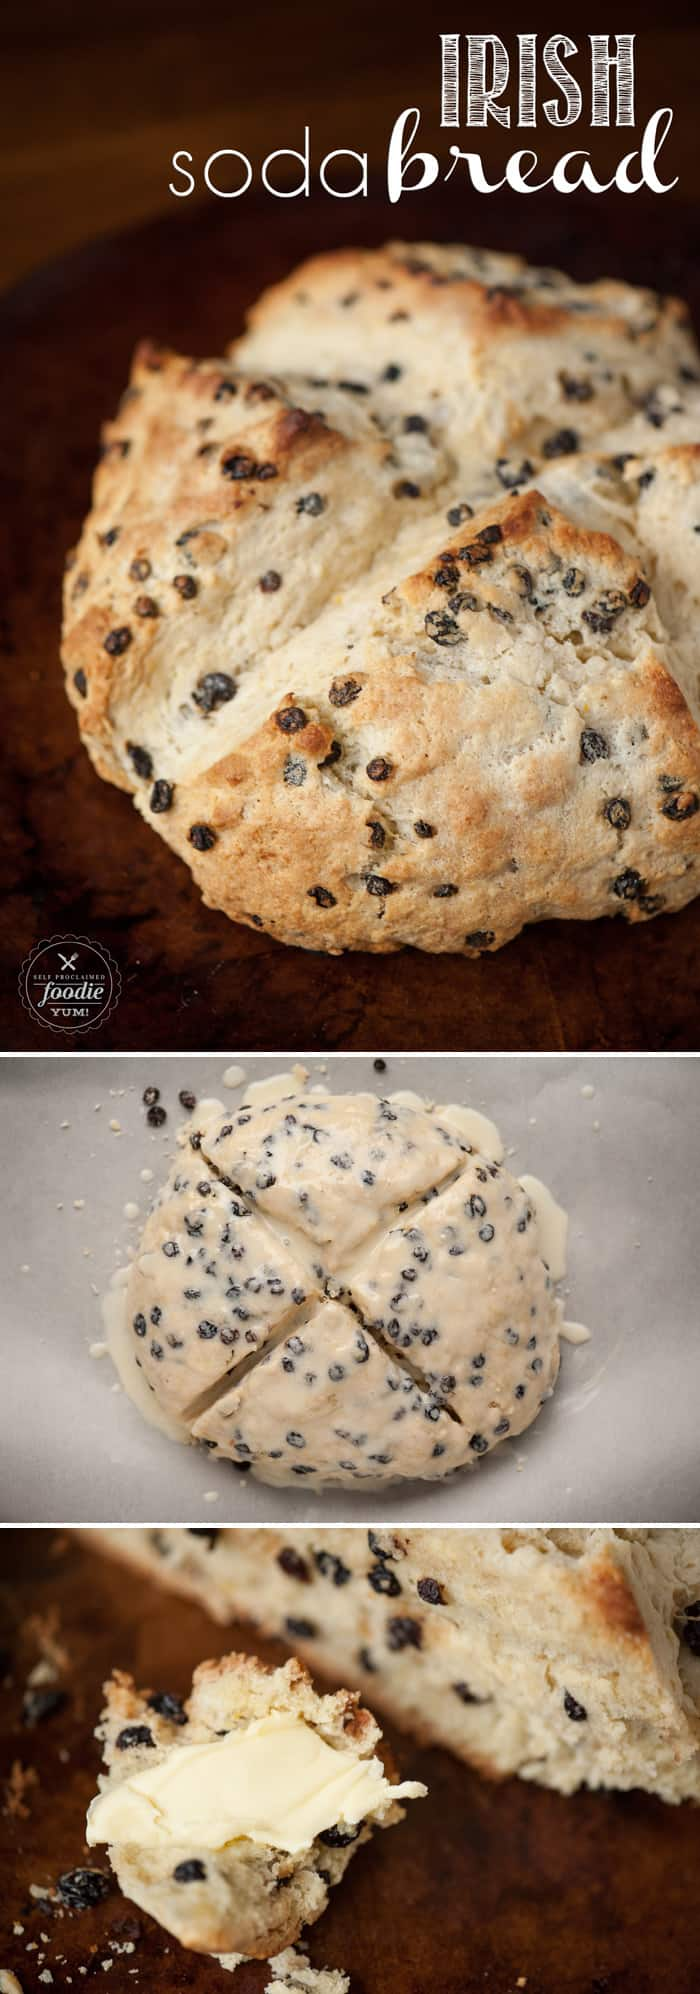 Irish Soda Bread, made from scratch with currants and buttermilk, is crispy on the outside and perfectly moist on the inside. It is a super easy recipe to make and has a very distinct taste. This subtly sweet bread is a perfect addition to any St. Patrick's Day celebration. #sodabread #irish #irishsodabread #saintpatricksday #stpaddys #stpatricks #currants #buttermilk